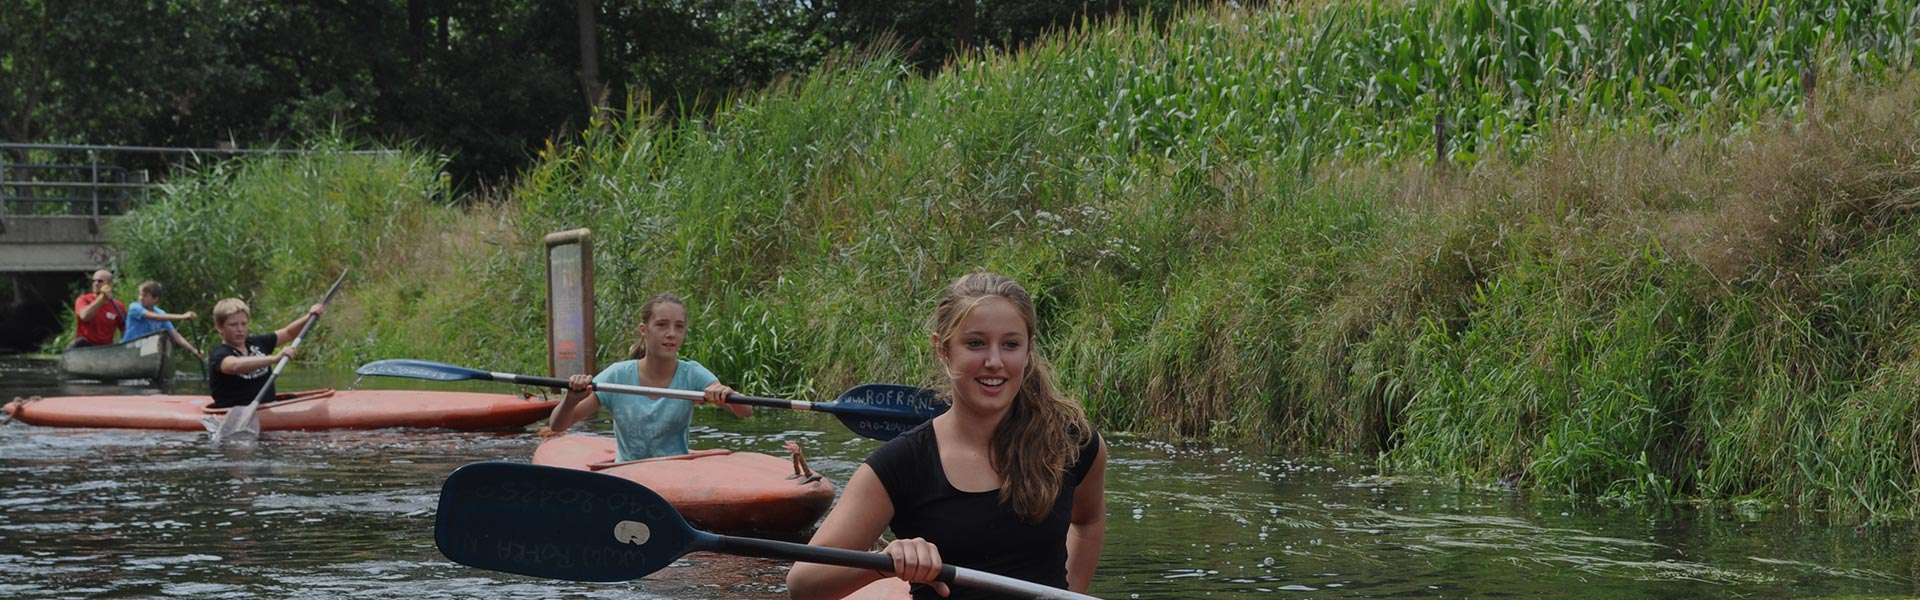 Kids' party canoeing